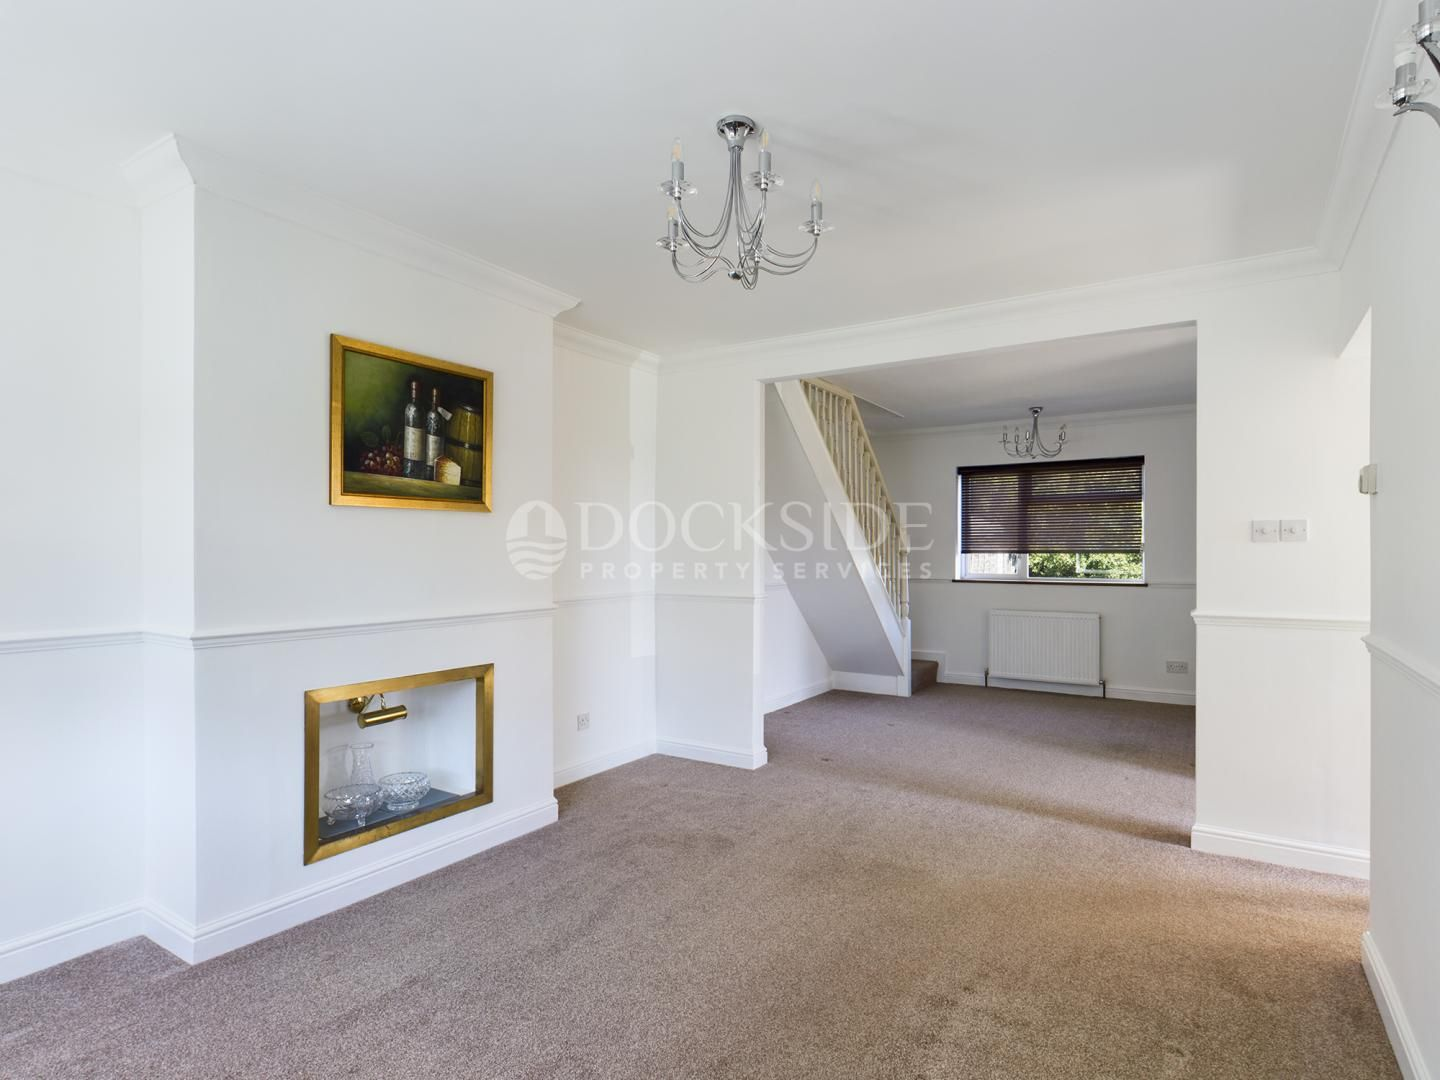 3 bed house for sale in Sharfleet Drive  - Property Image 2